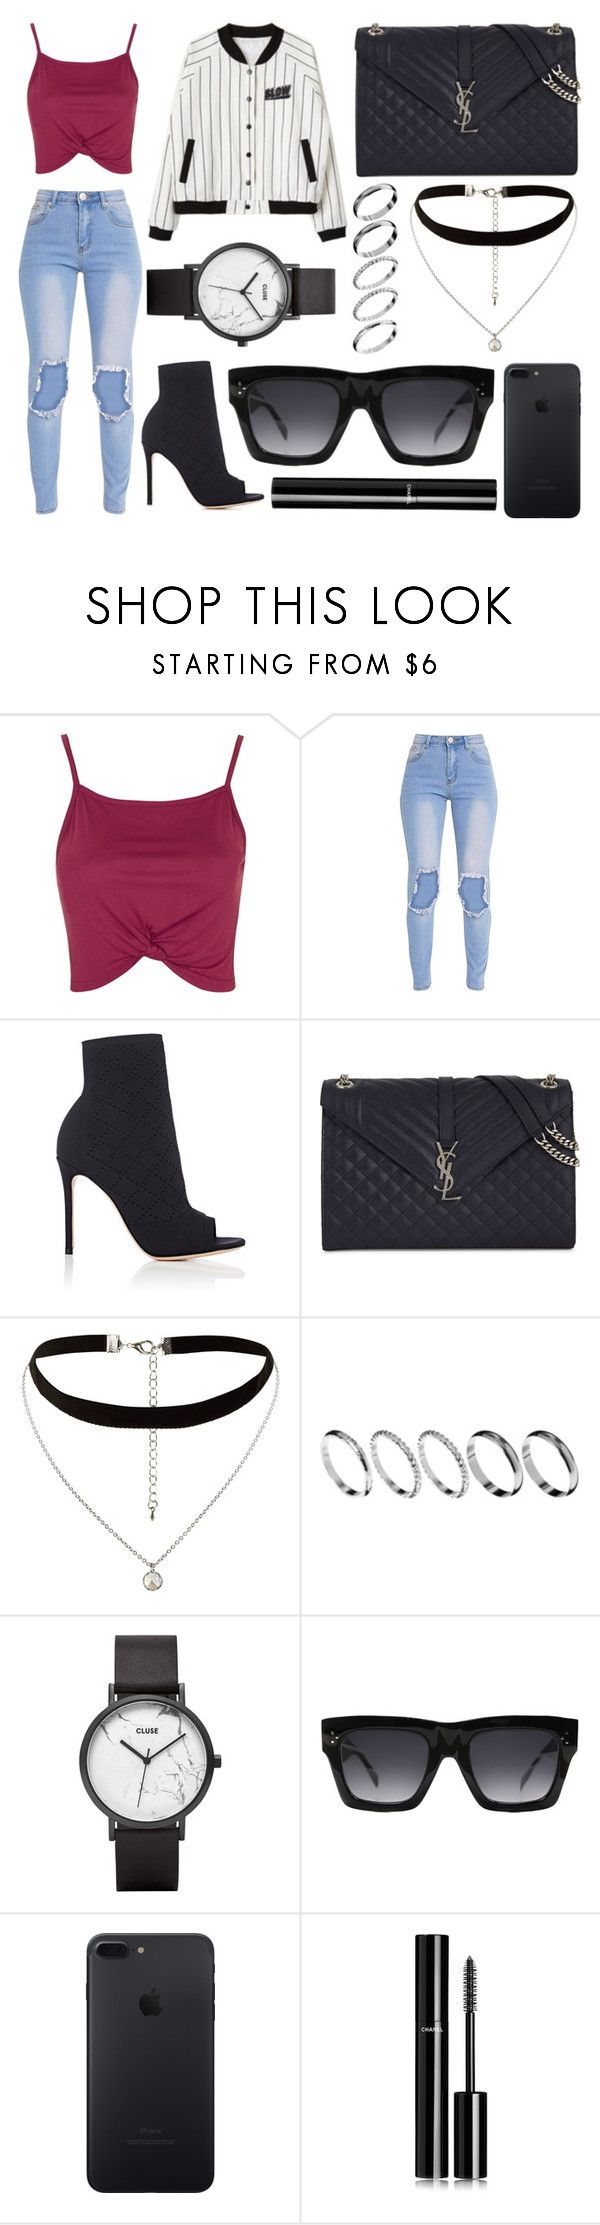 """351."" by plaraa on Polyvore featuring moda, Topshop, Gianvito Rossi, Yves Saint Laurent, New Look, ASOS, CLUSE, CÉLINE y Chanel"